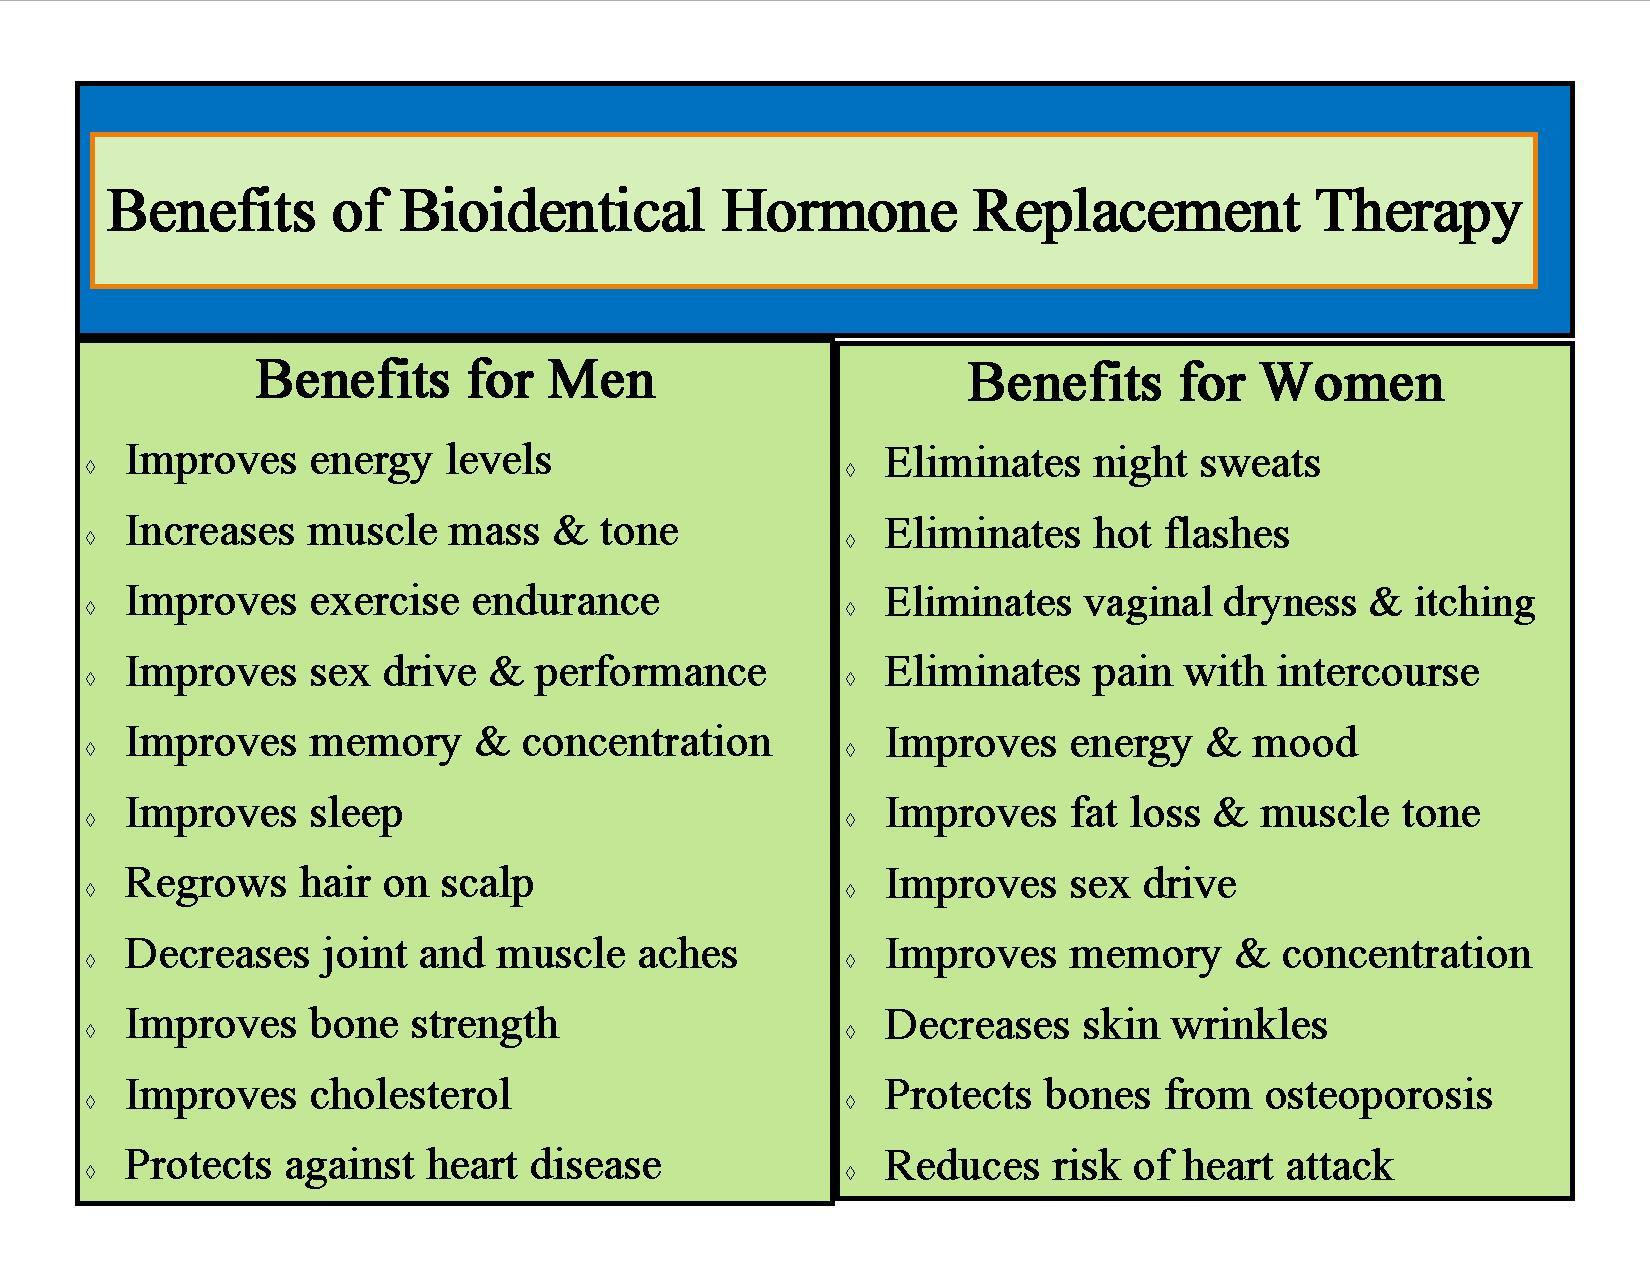 Sex drive and hormone replacement